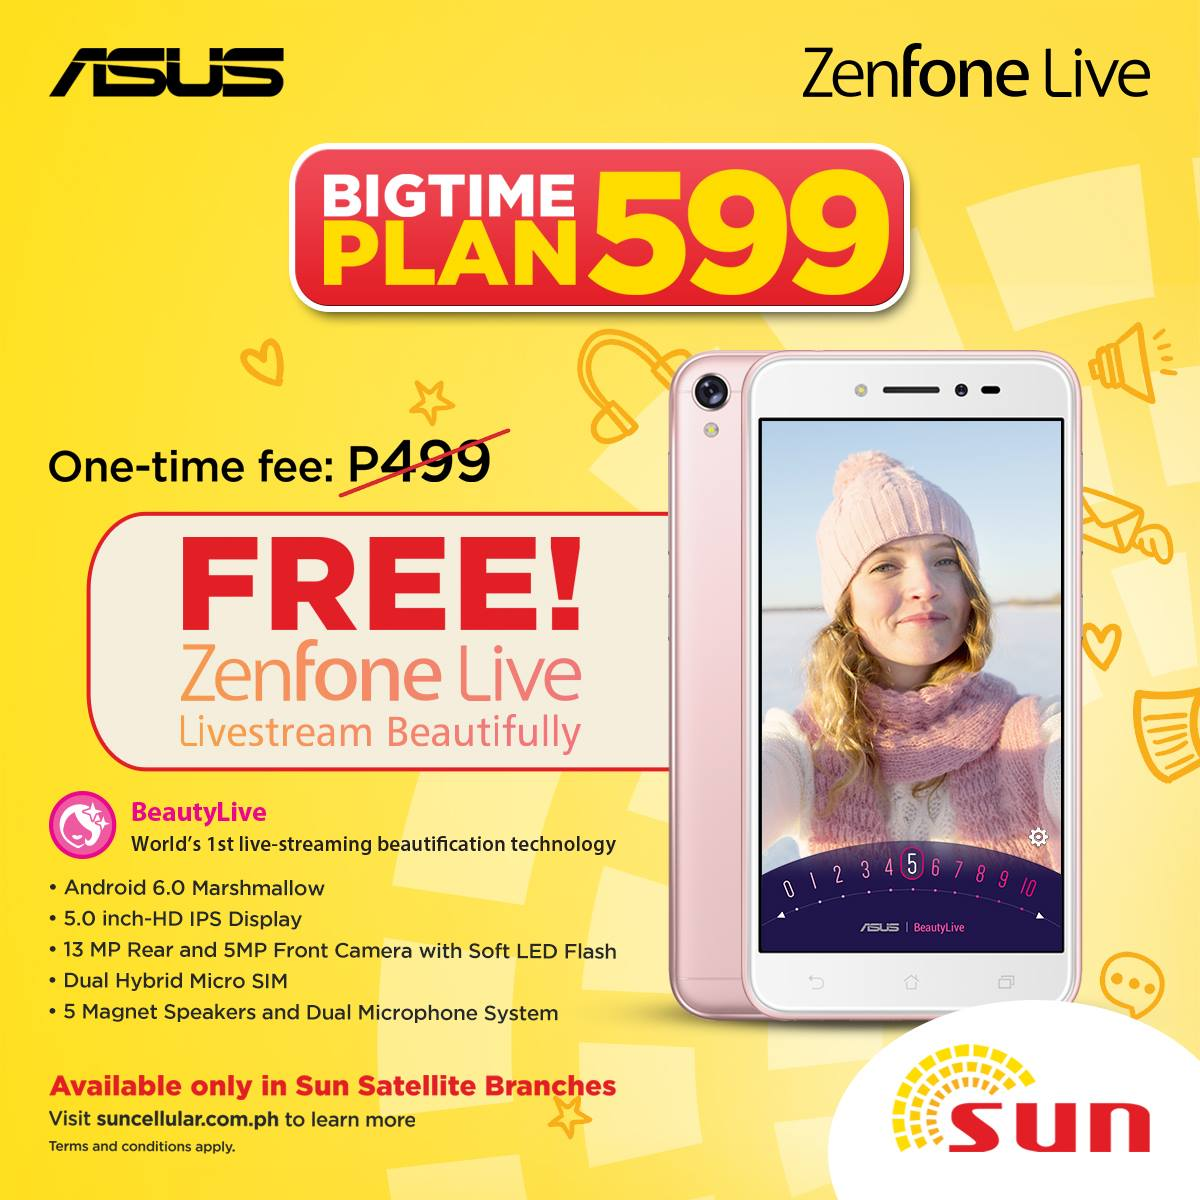 Zenfone live now free at sun bigtime plan 599 gadget for Sun mobile plan